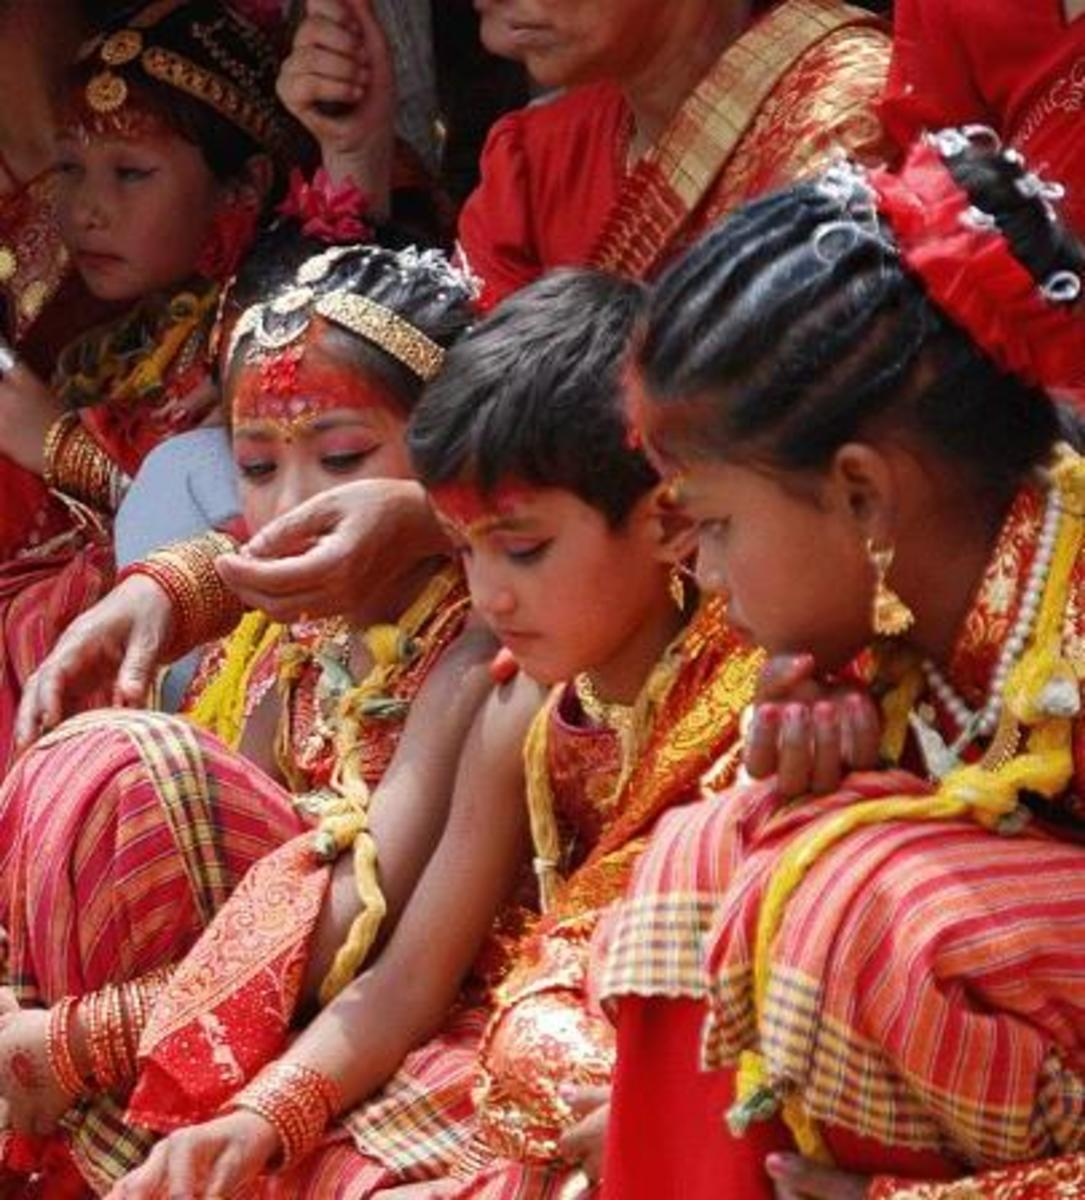 Young Nepali girls performing fertility rituals